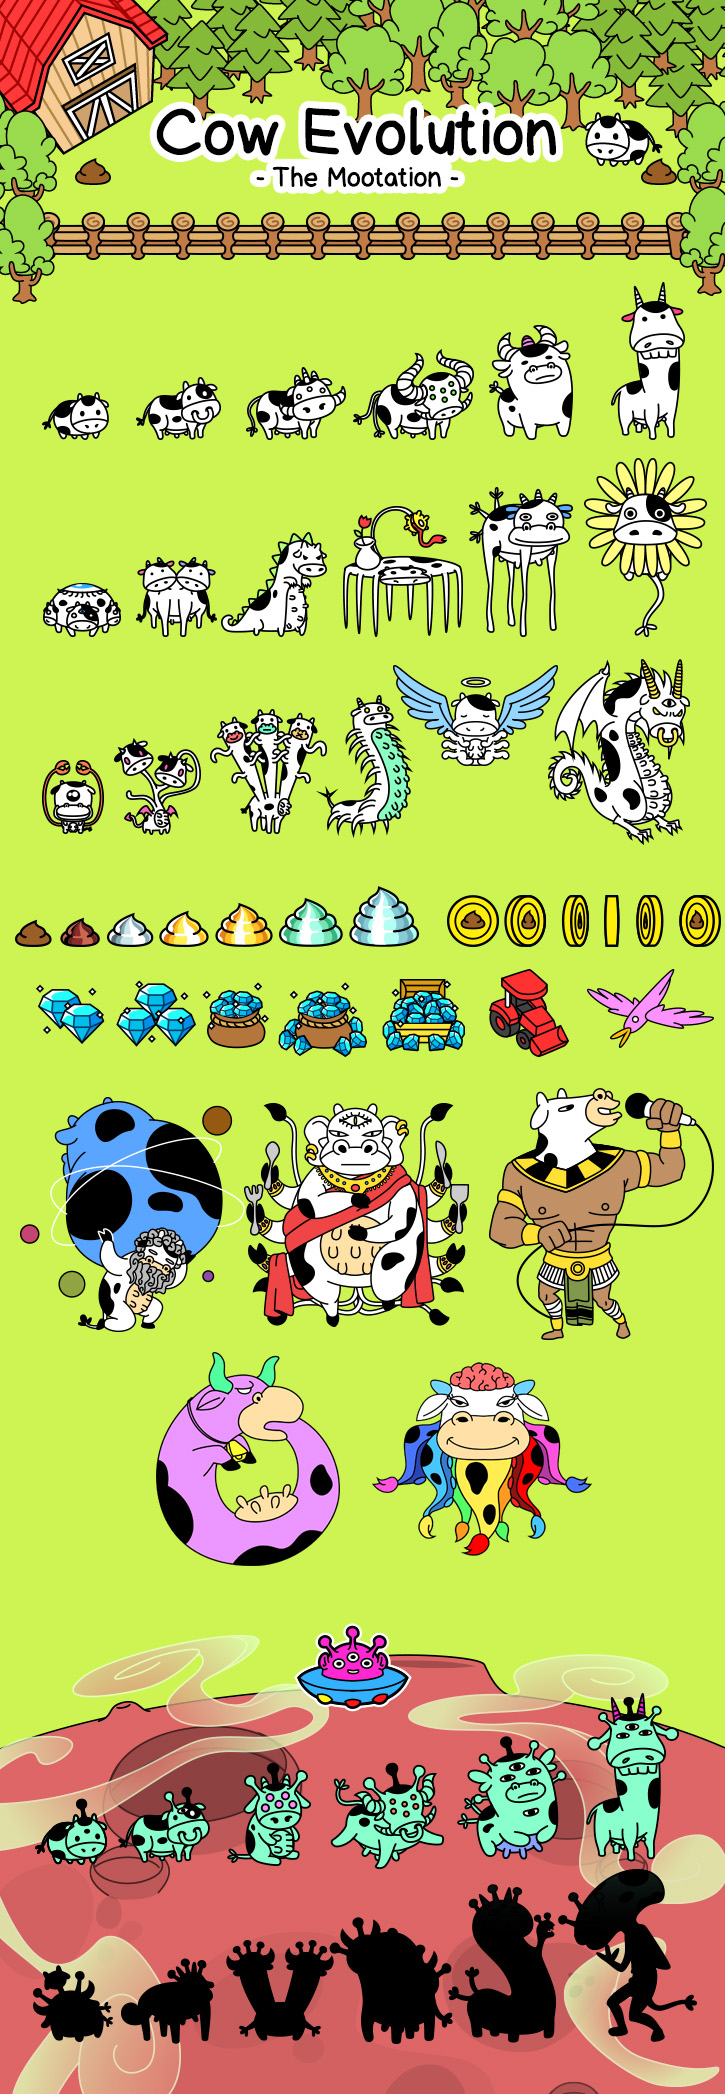 Cow Evolution by vmat on DeviantArt